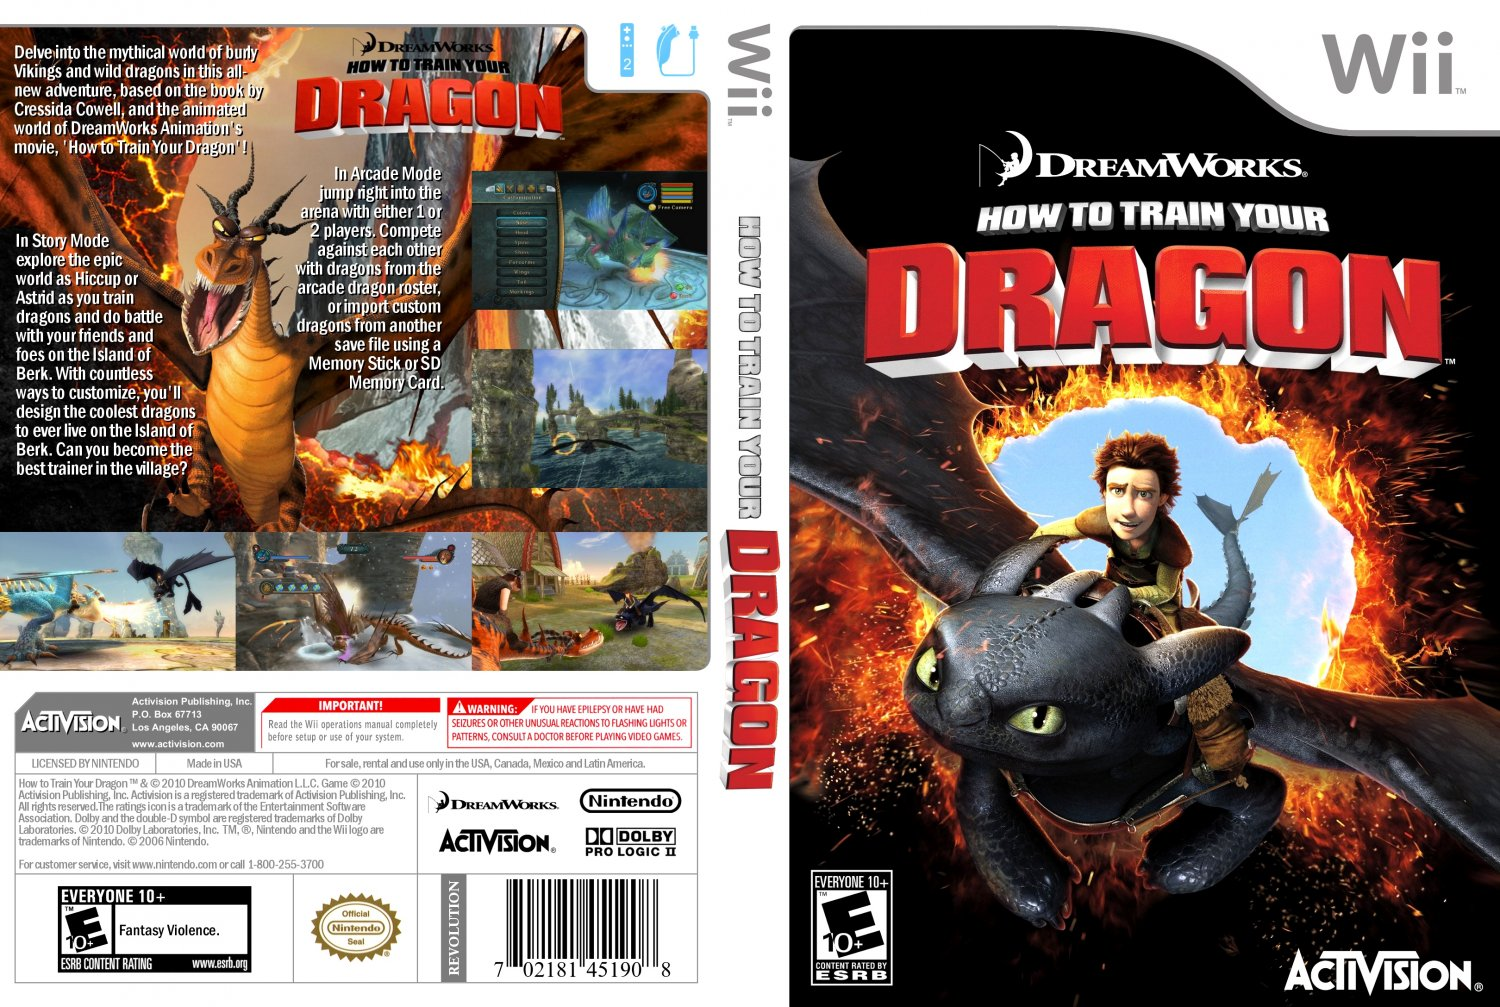 How To Train Your Dragon Dvd | www.imgkid.com - The Image ...